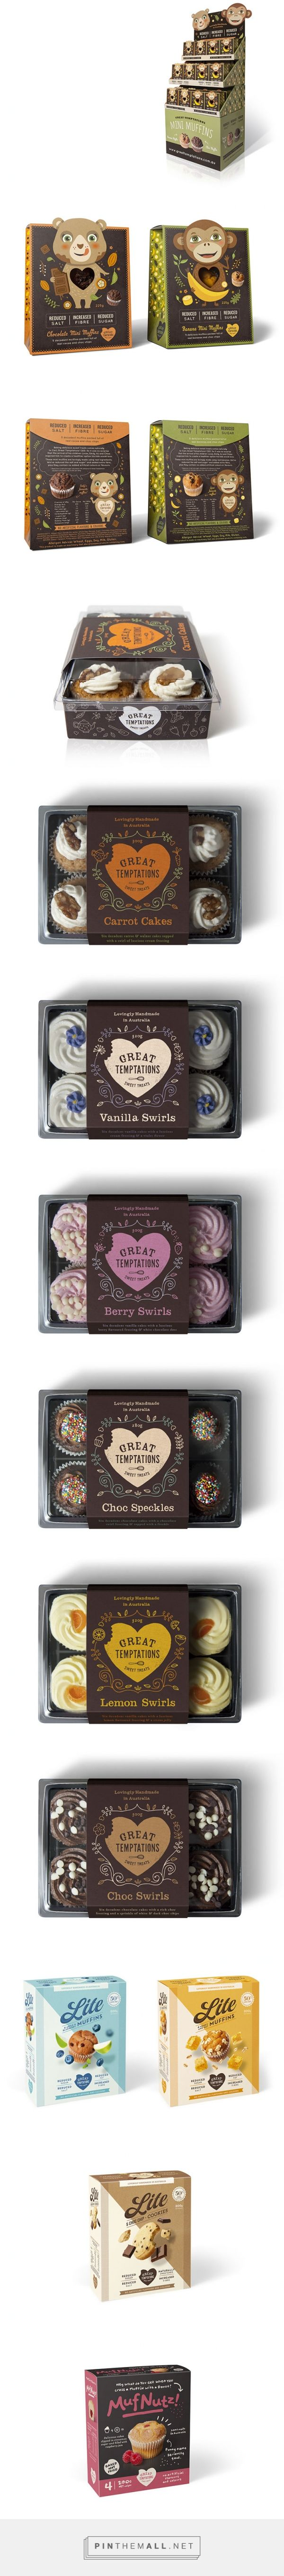 muffin packaging, cupcake packaging design | Dessein - created via http://pinthemall.net